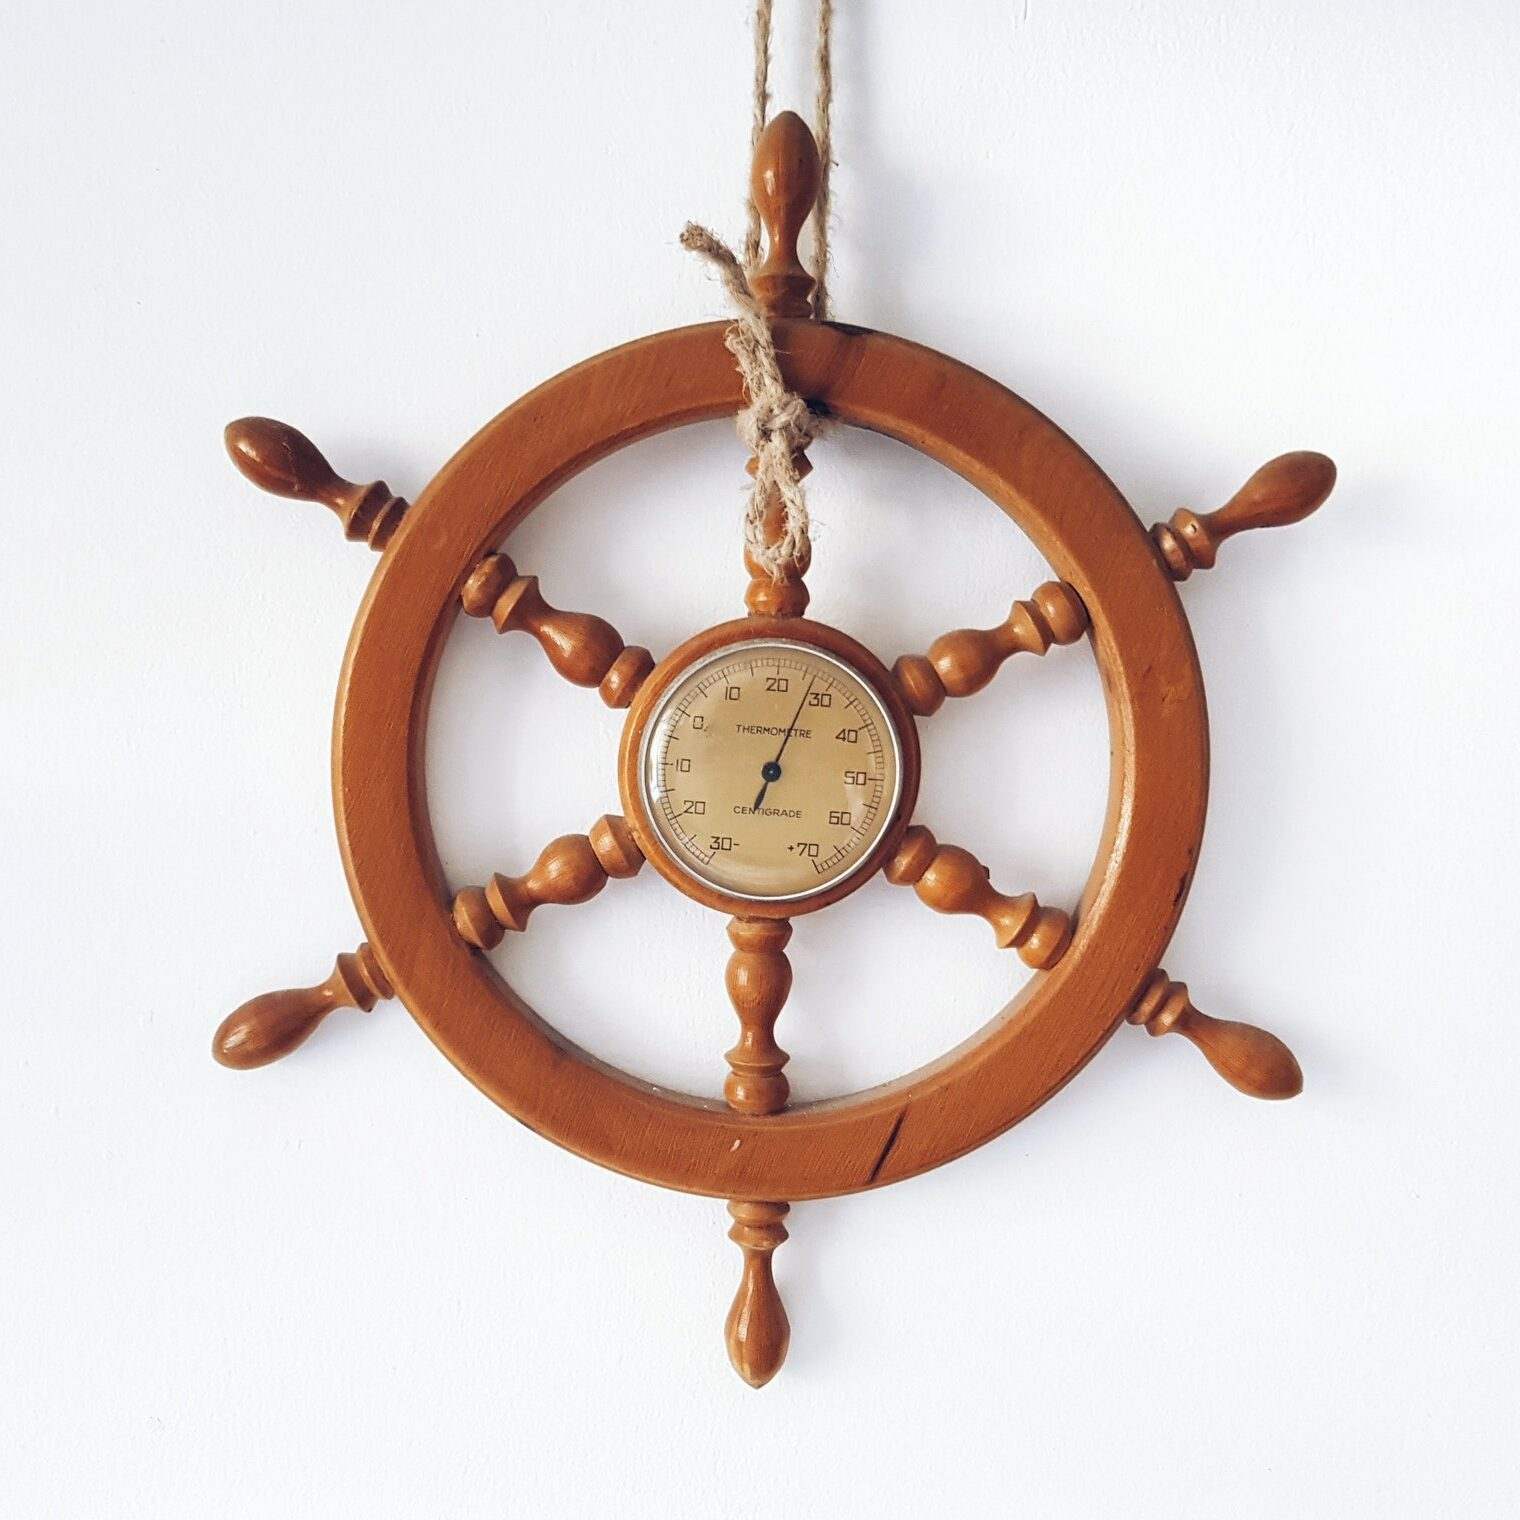 Wooden ship steering wheel, helm, hanging on white wall.